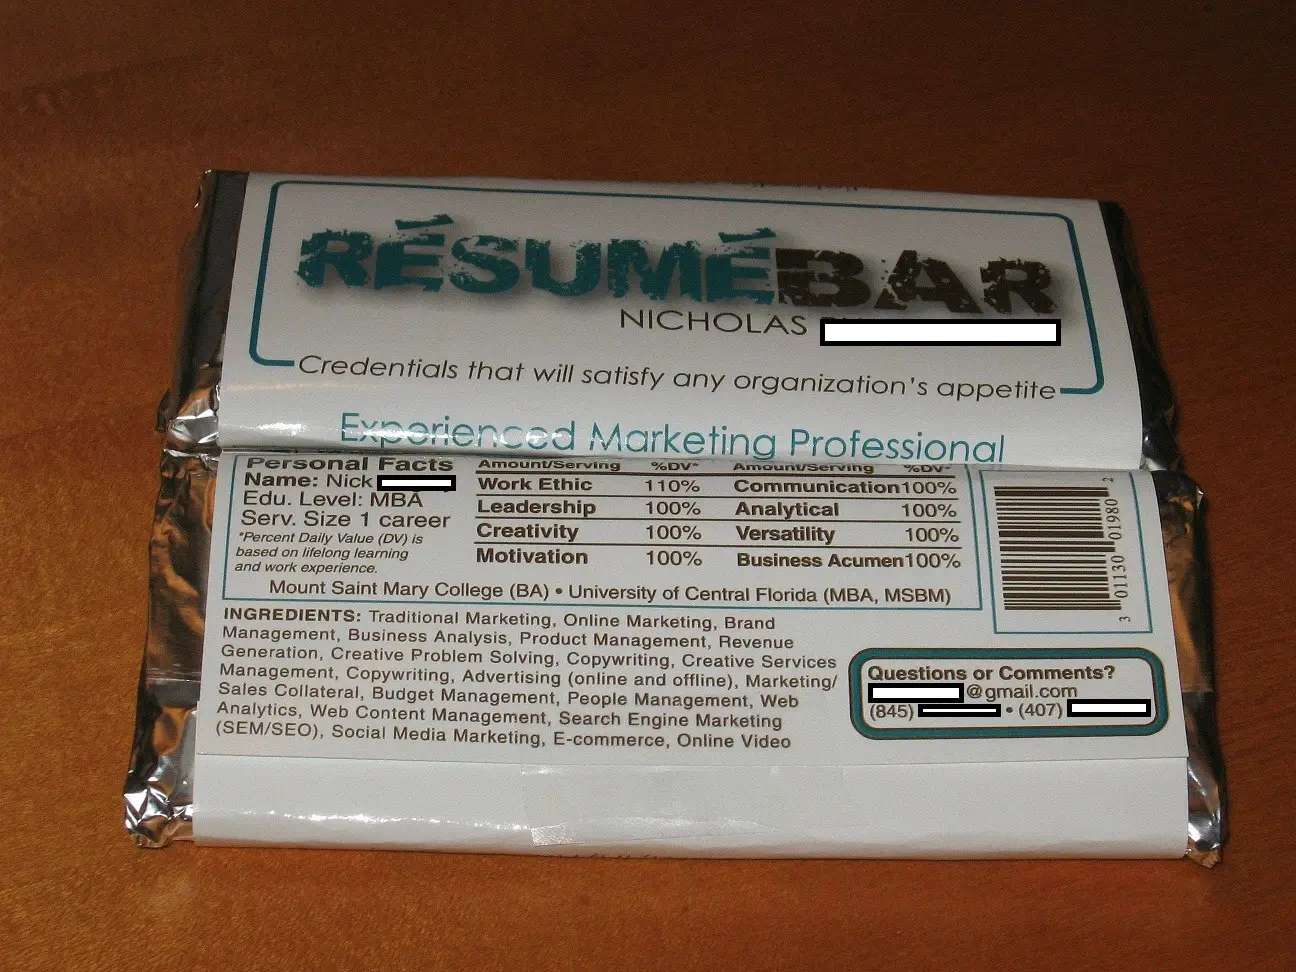 This candy bar resume went viral on Reddit, and got its creator a marketing job.